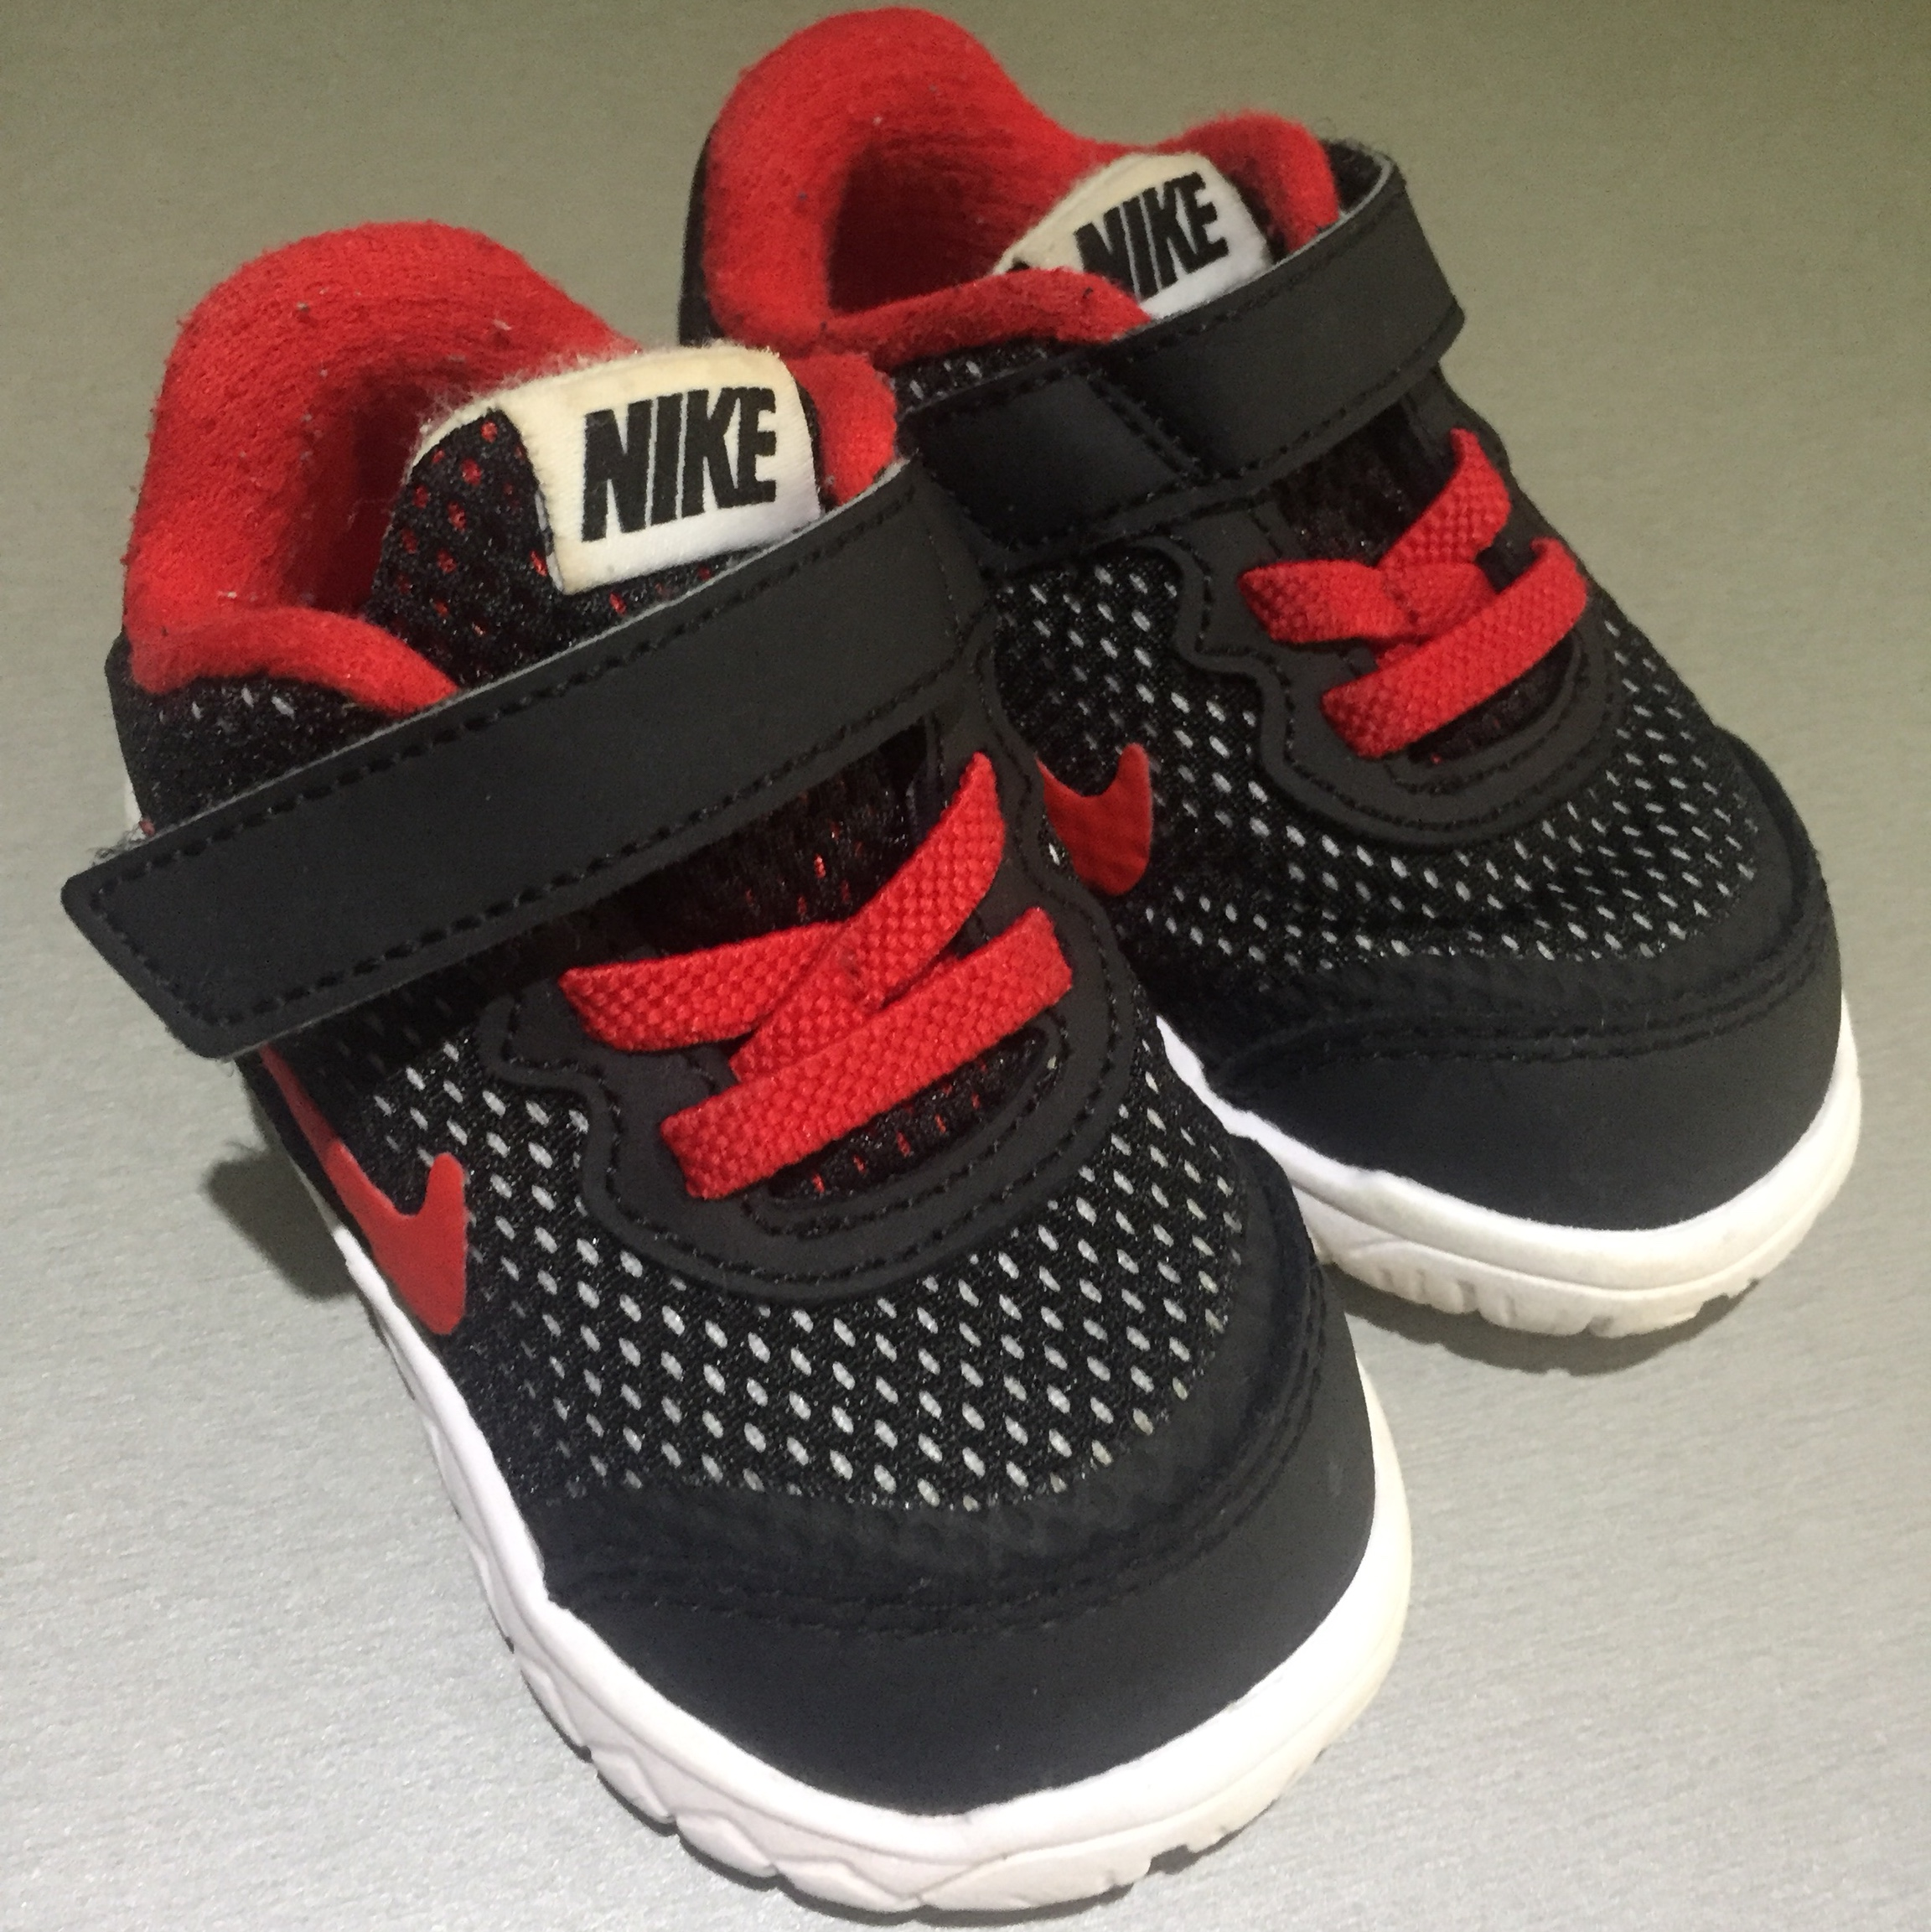 Baby Nike trainers Infant size 3.5 - Depop